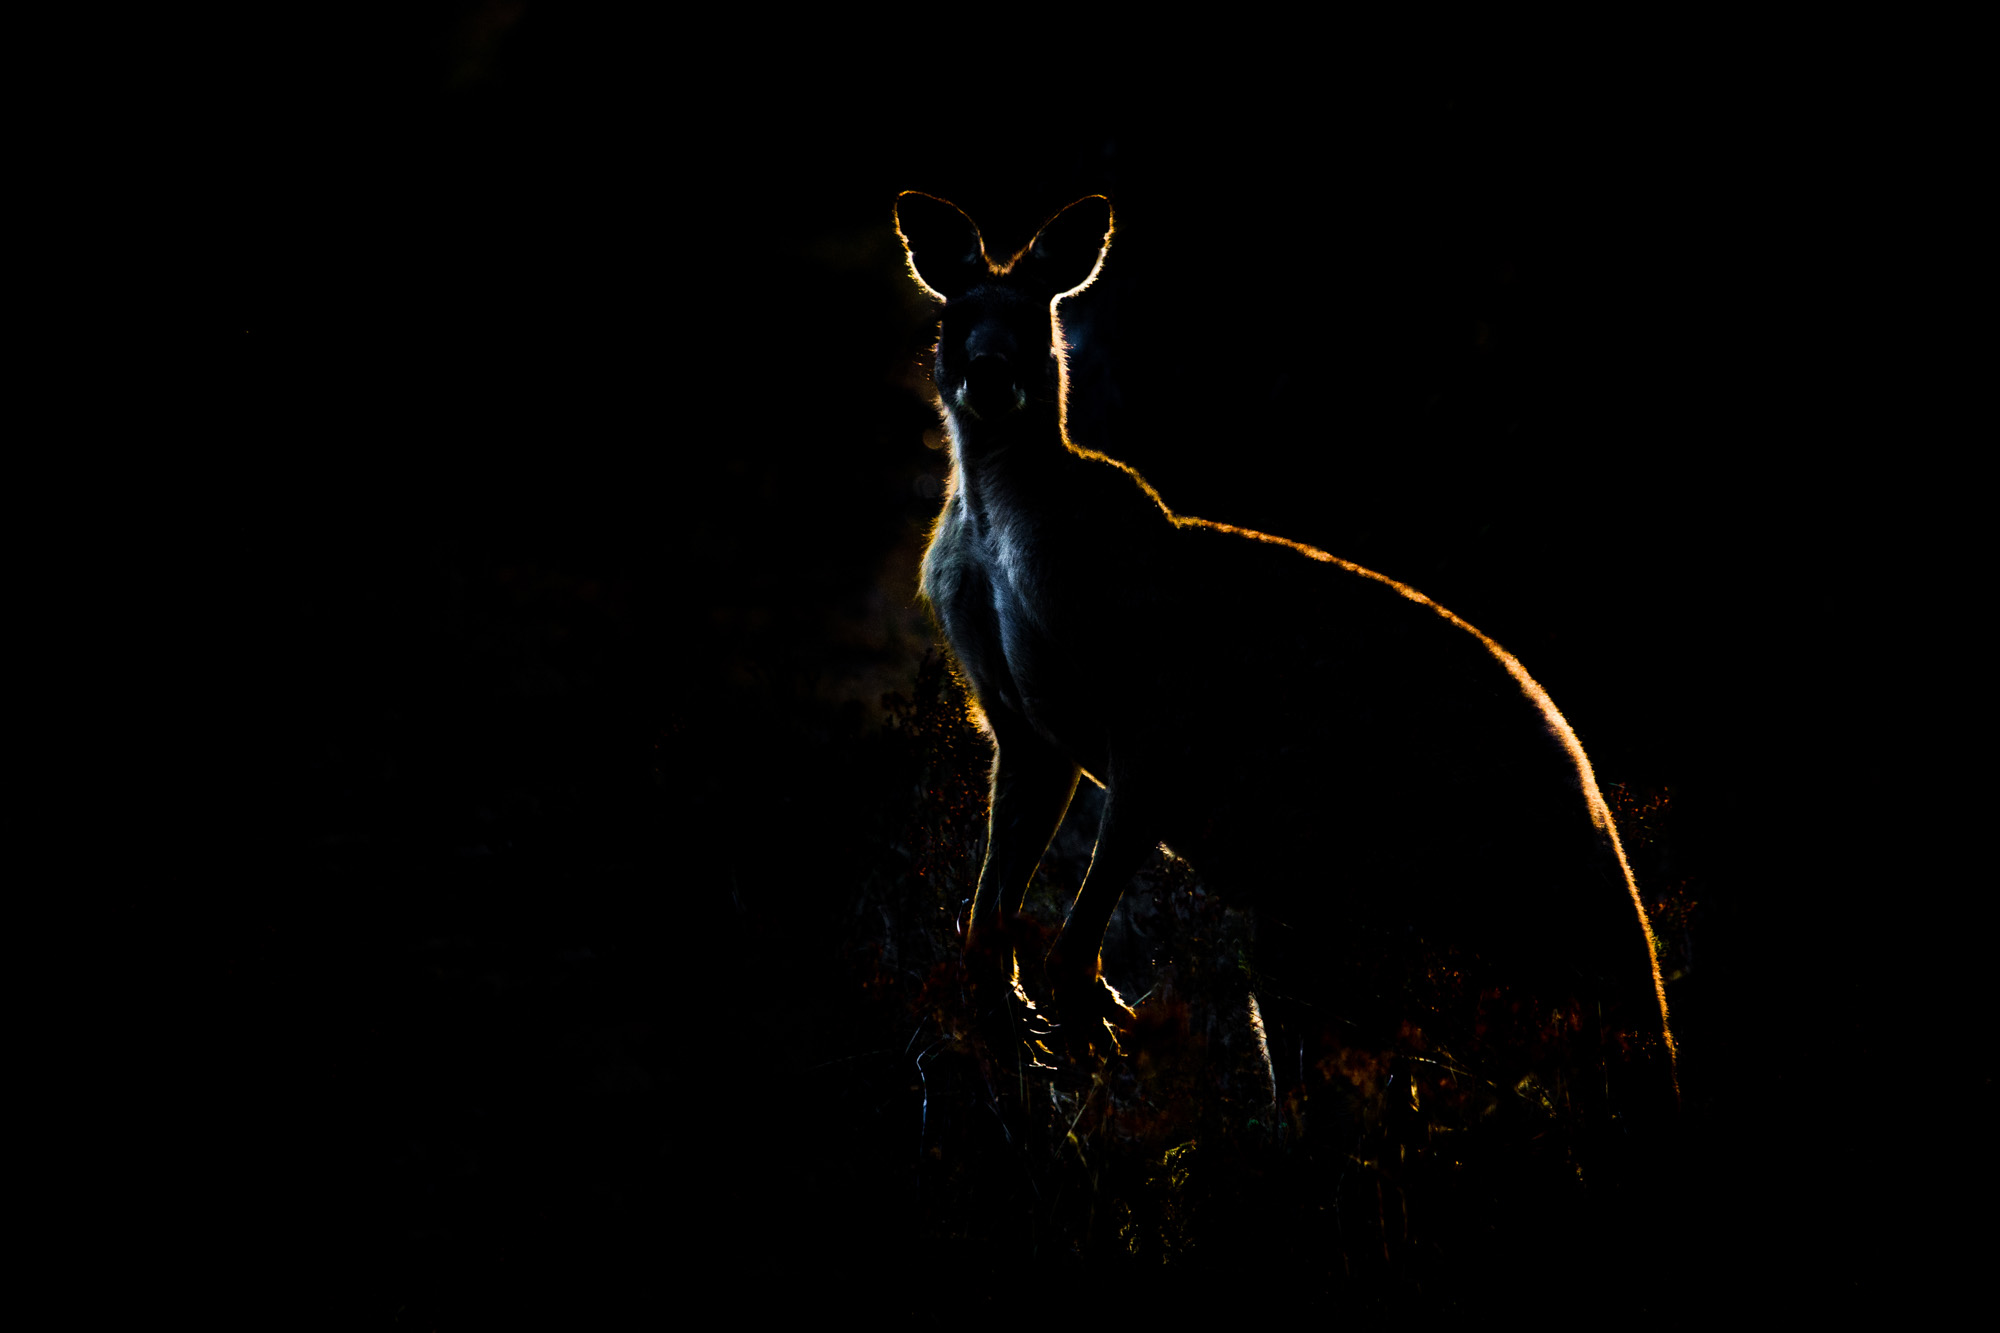 grey kangaroo male back lit.jpg